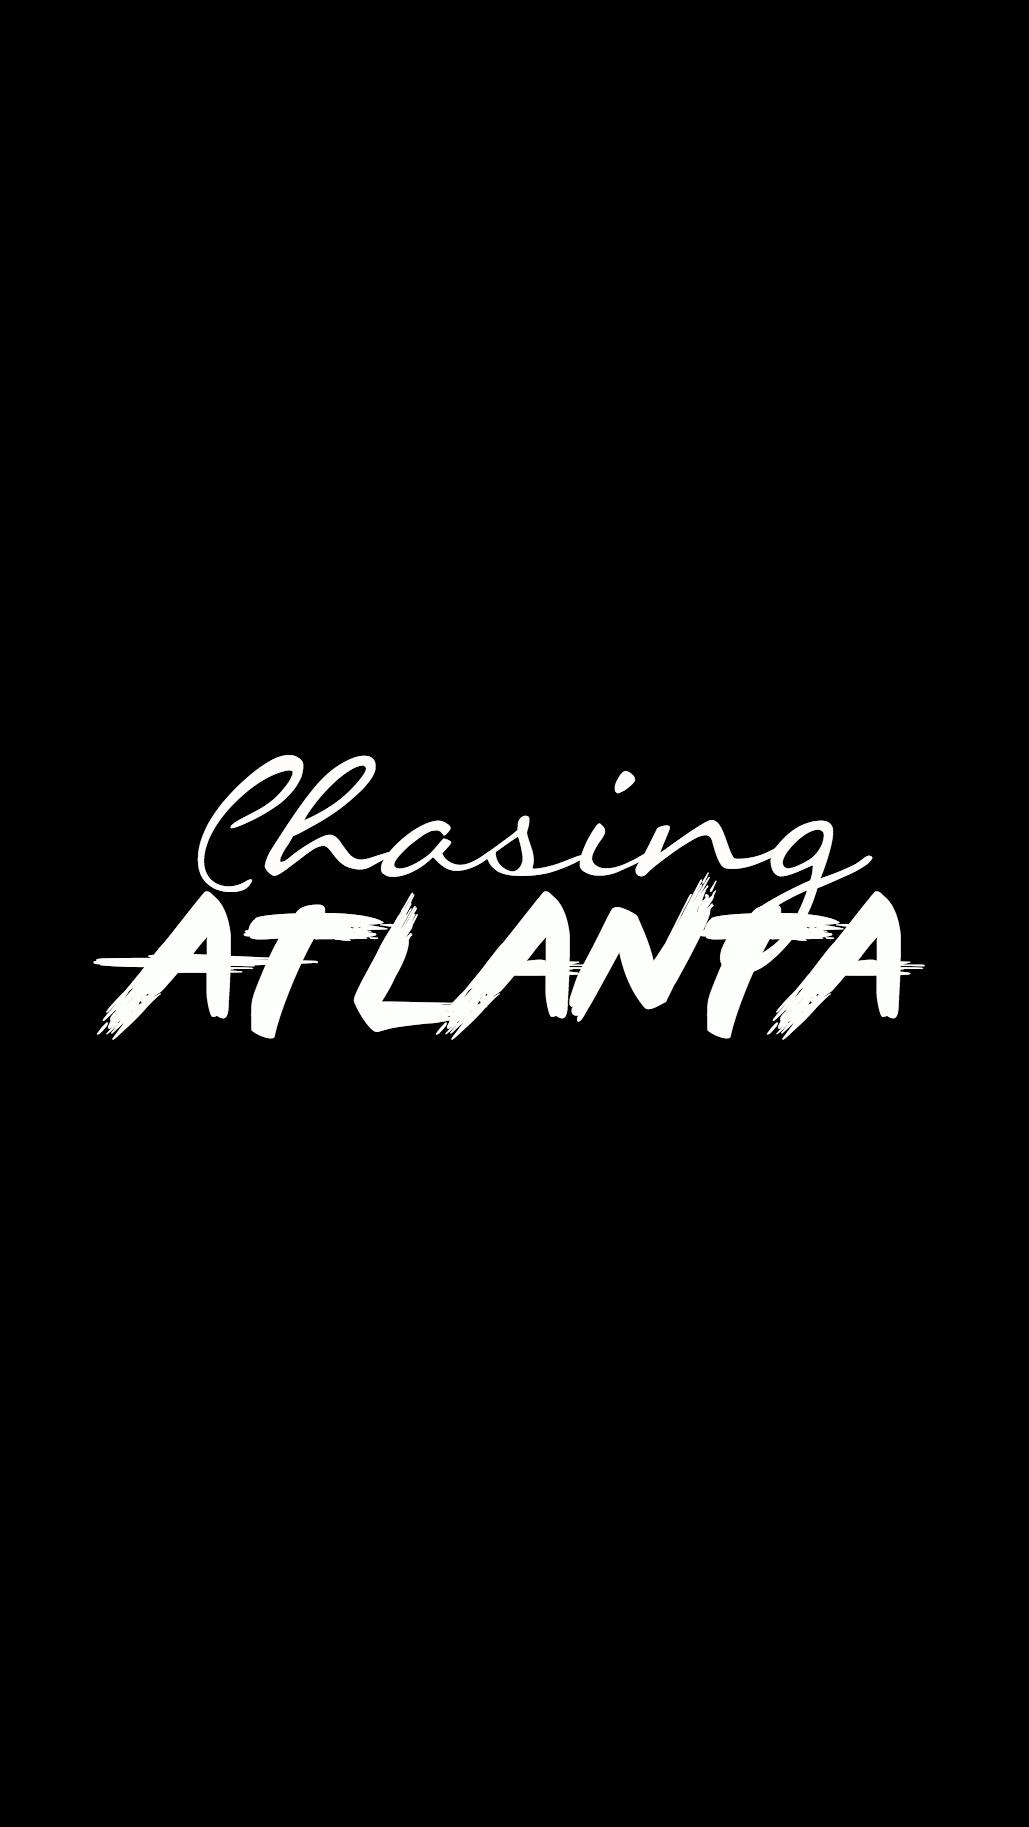 Chasing: Atlanta (TV Series 2017– ) - IMDb